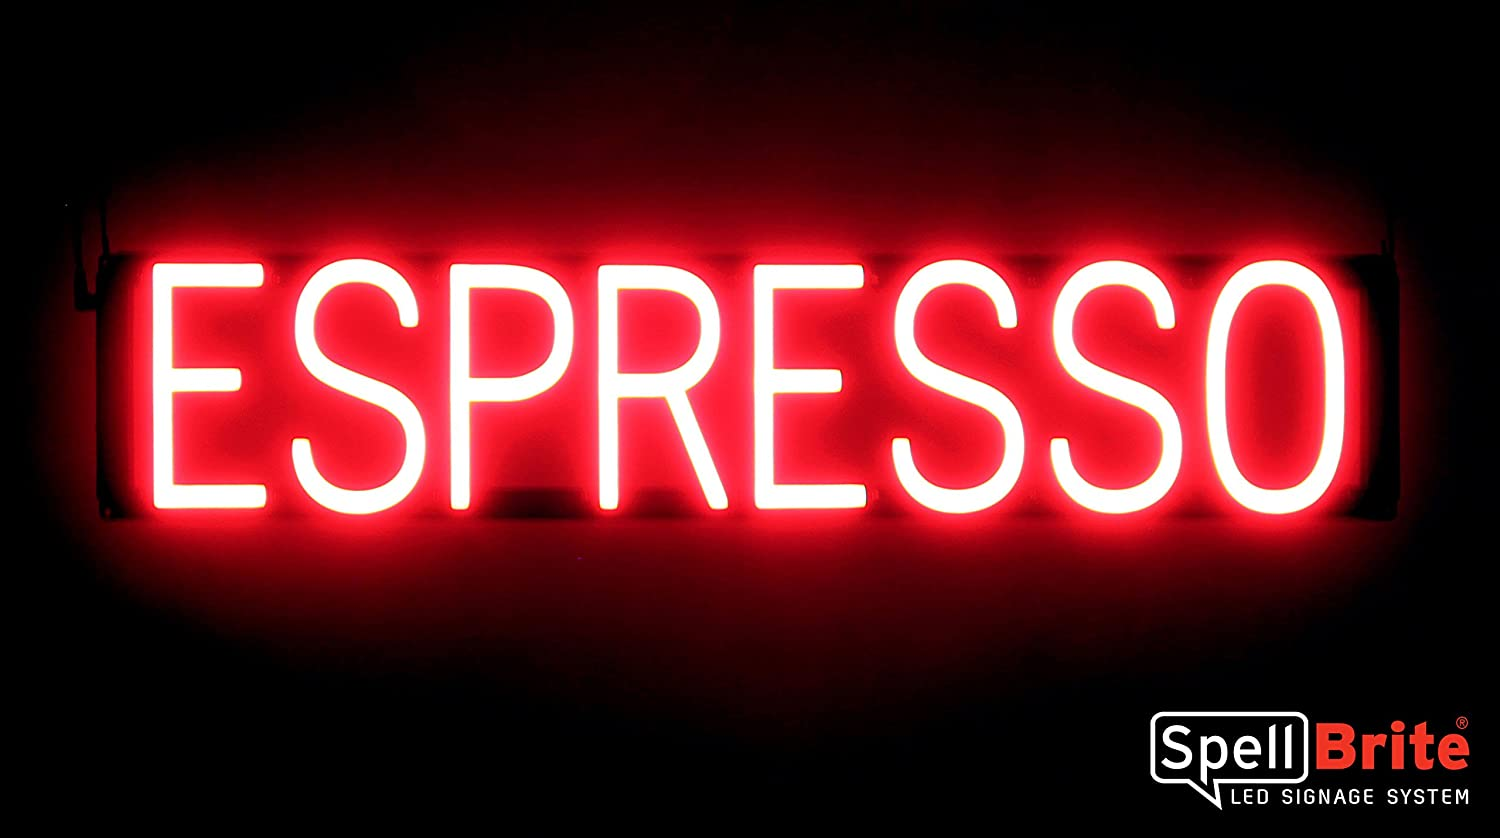 Neon Look, LED Performance SpellBrite Ultra-Bright Espresso Sign Neon-LED Sign